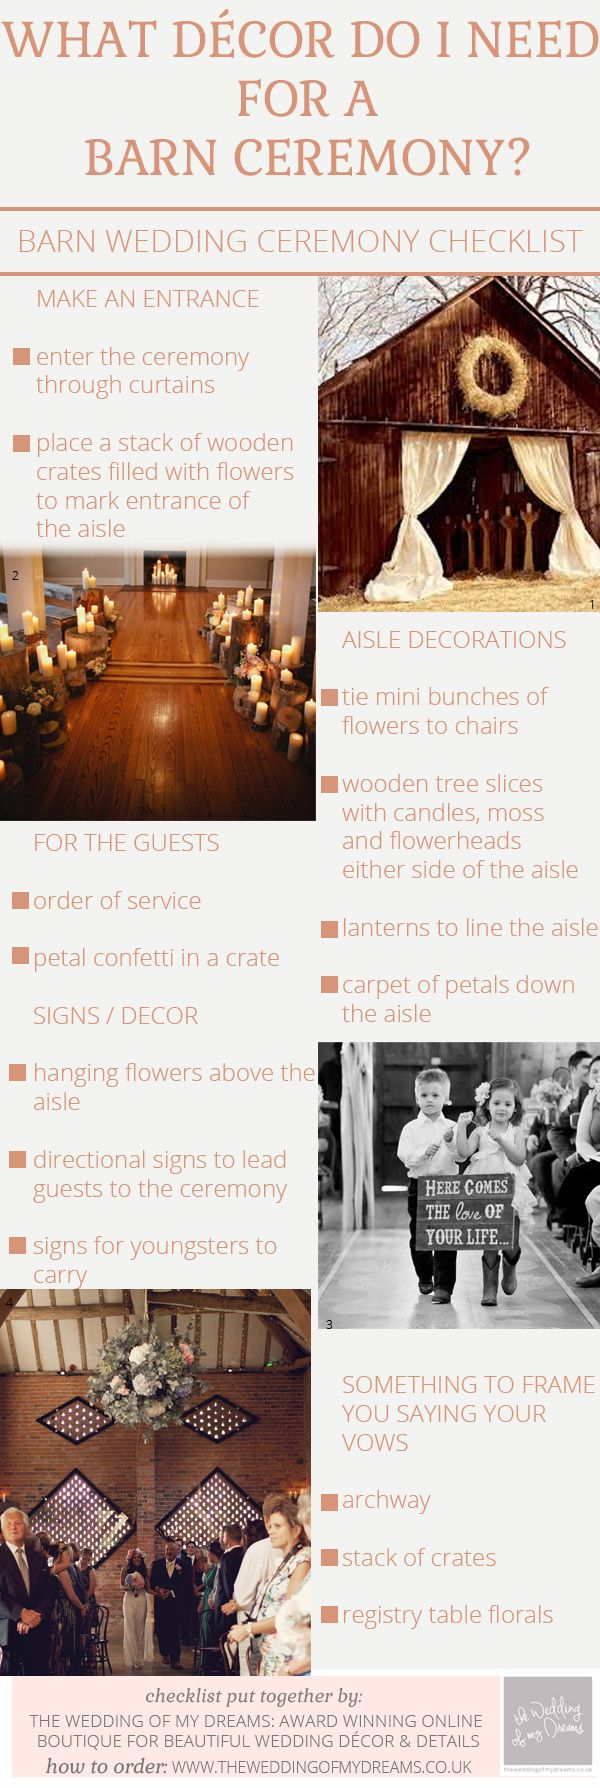 What Decorations Do I Need For A Barn Wedding Ceremony – Checklist